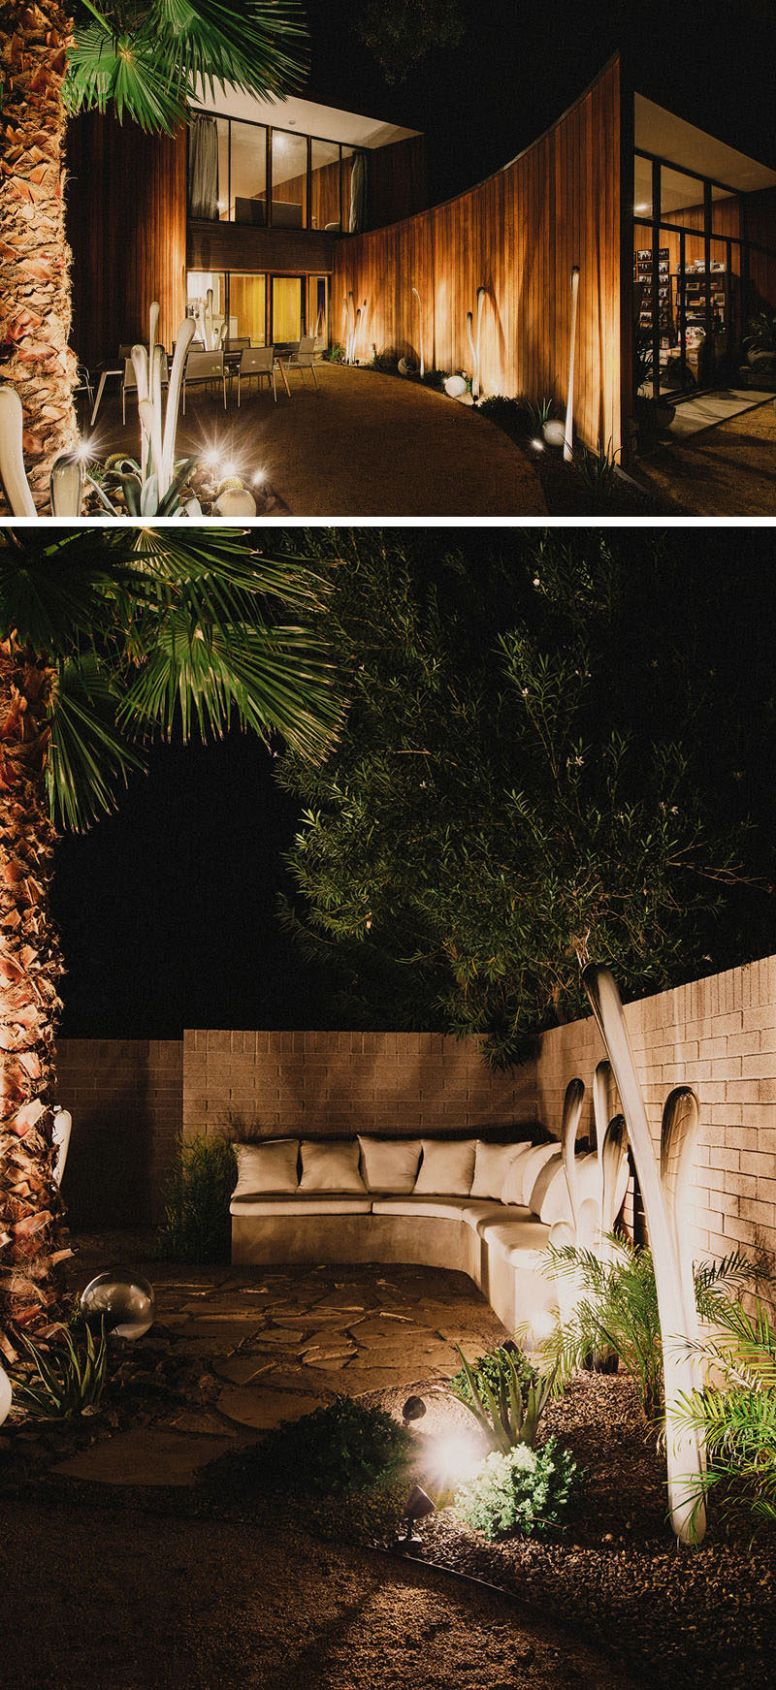 10 Outdoor Lighting Ideas To Inspire Your Spring Backyard Makeover - backyard ideas lights